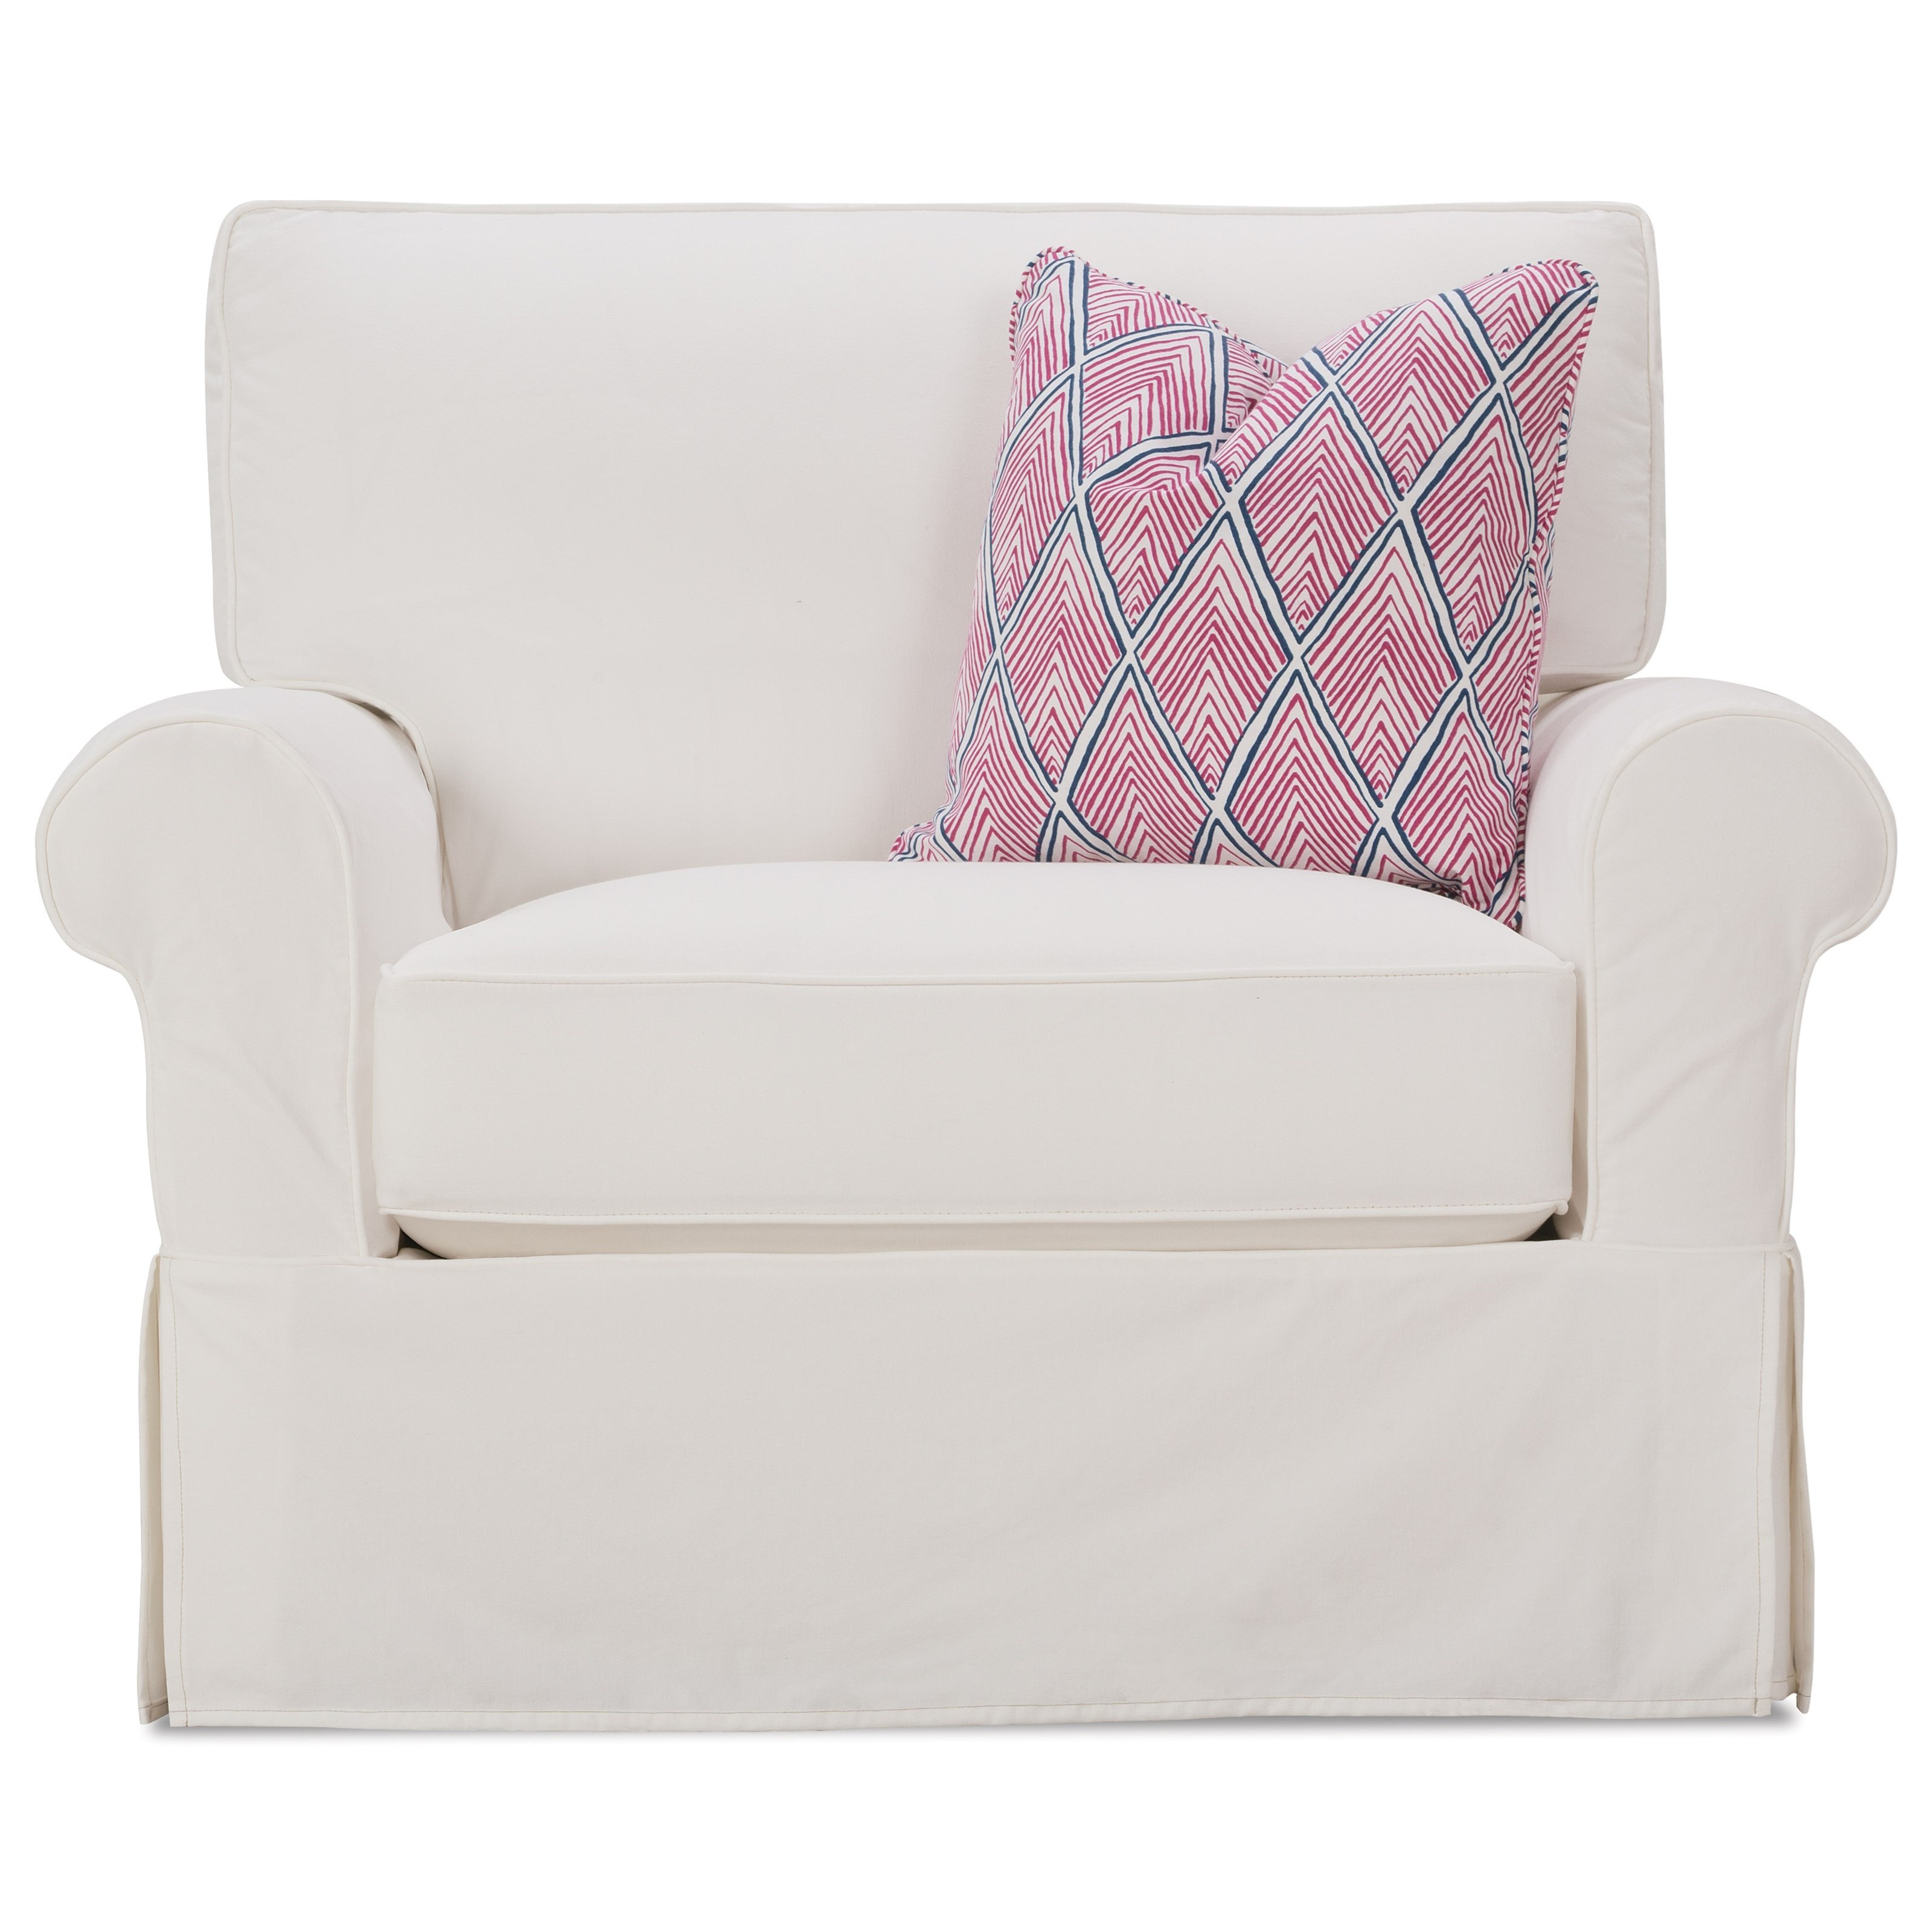 Rowe Easton P275 068 Casual Chair And A Half With